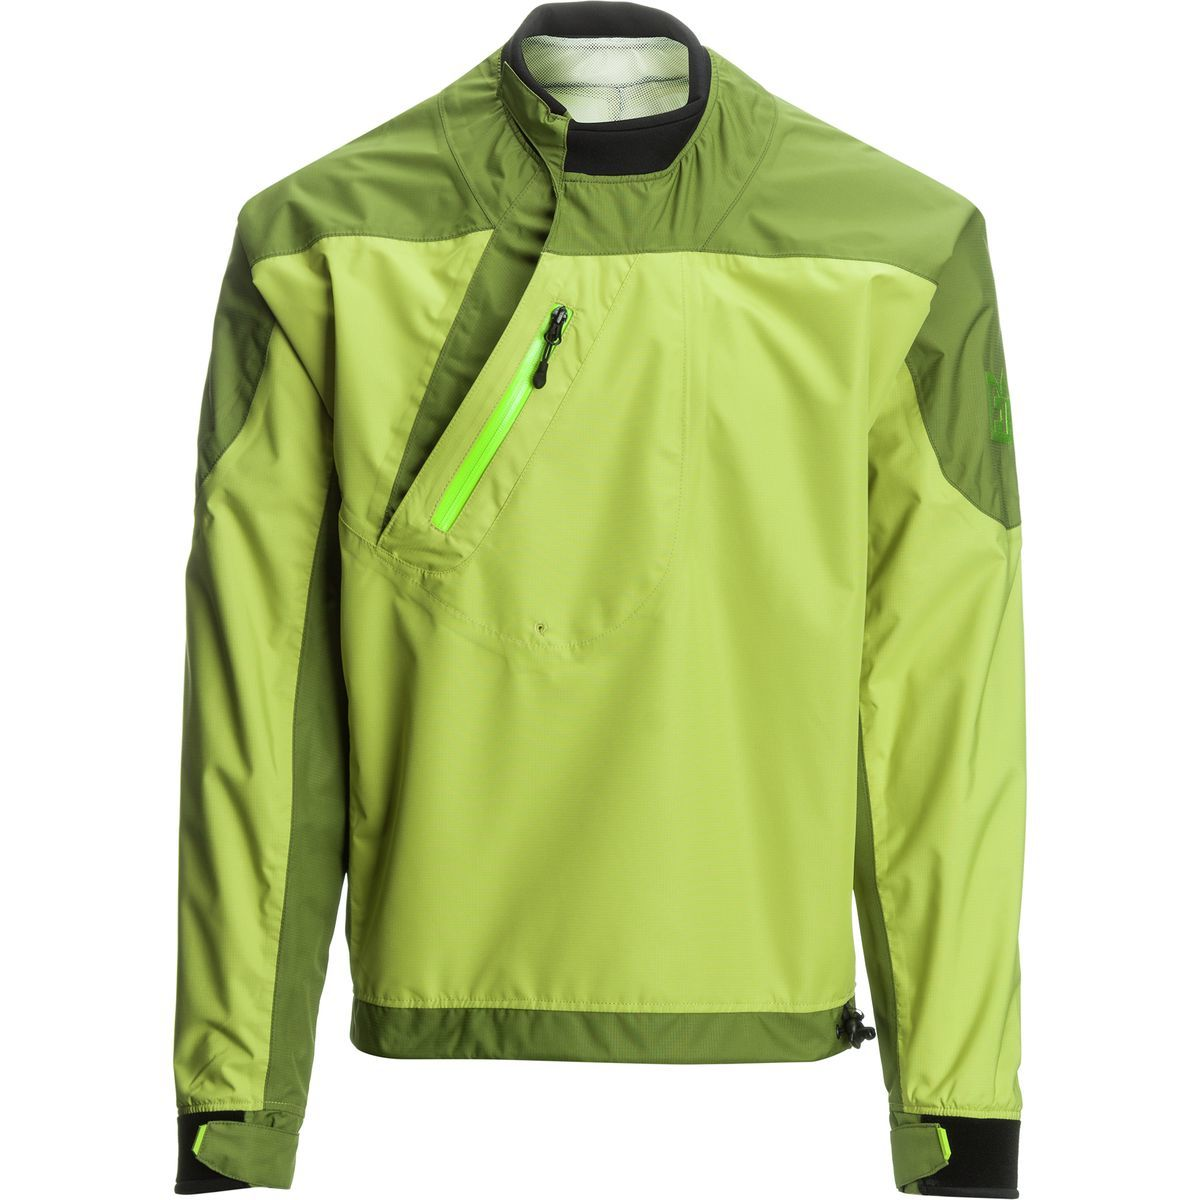 Immersion Research Zephyr Paddling Long-Sleeve Jacket - Men's